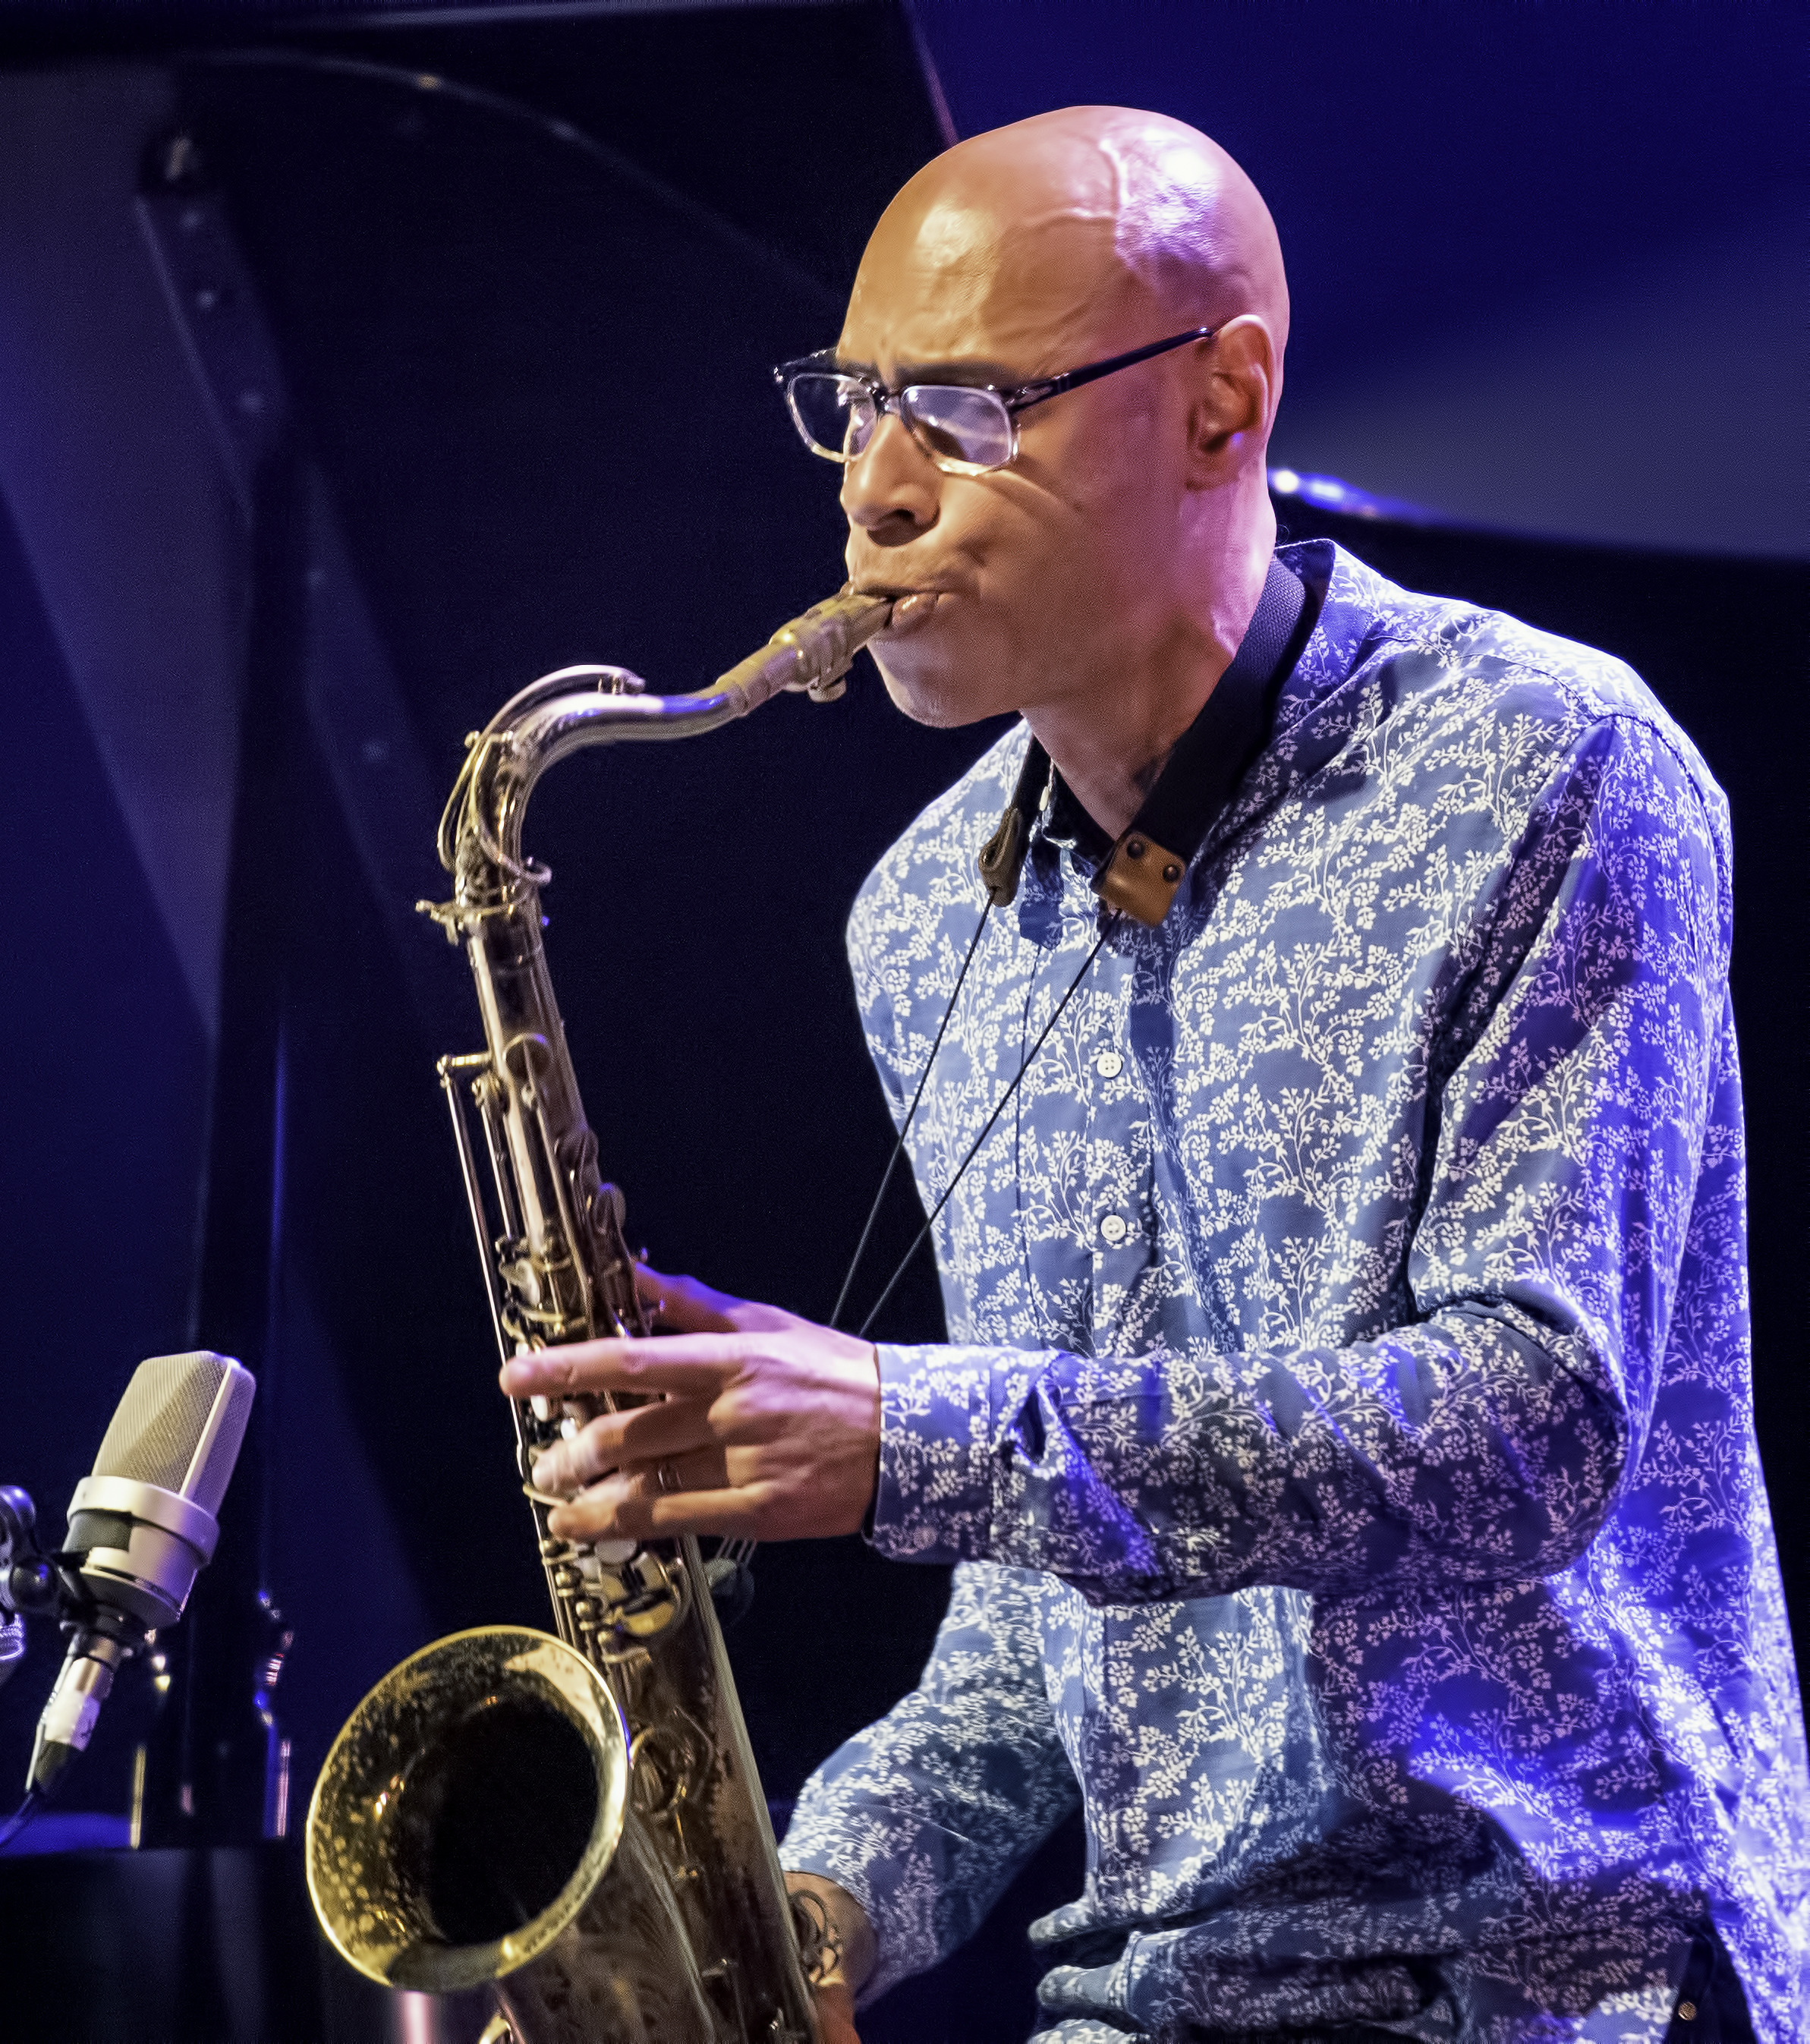 Joshua Redman with Quartet At The Montreal International Jazz Festival 2019